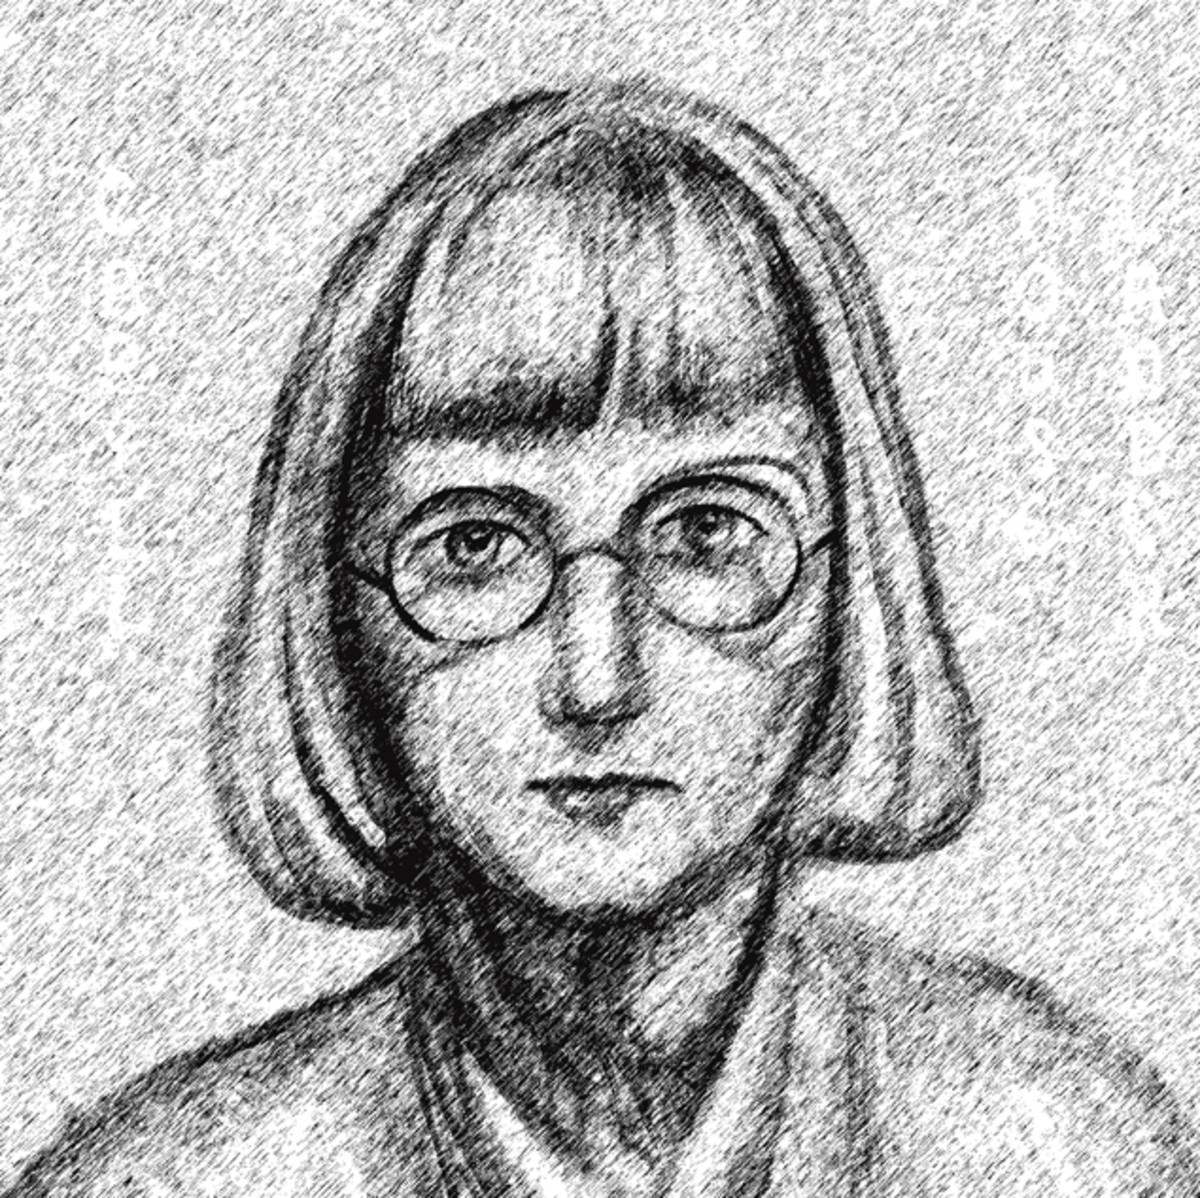 Caryll Houselander's thick glasses magnified her eyes.